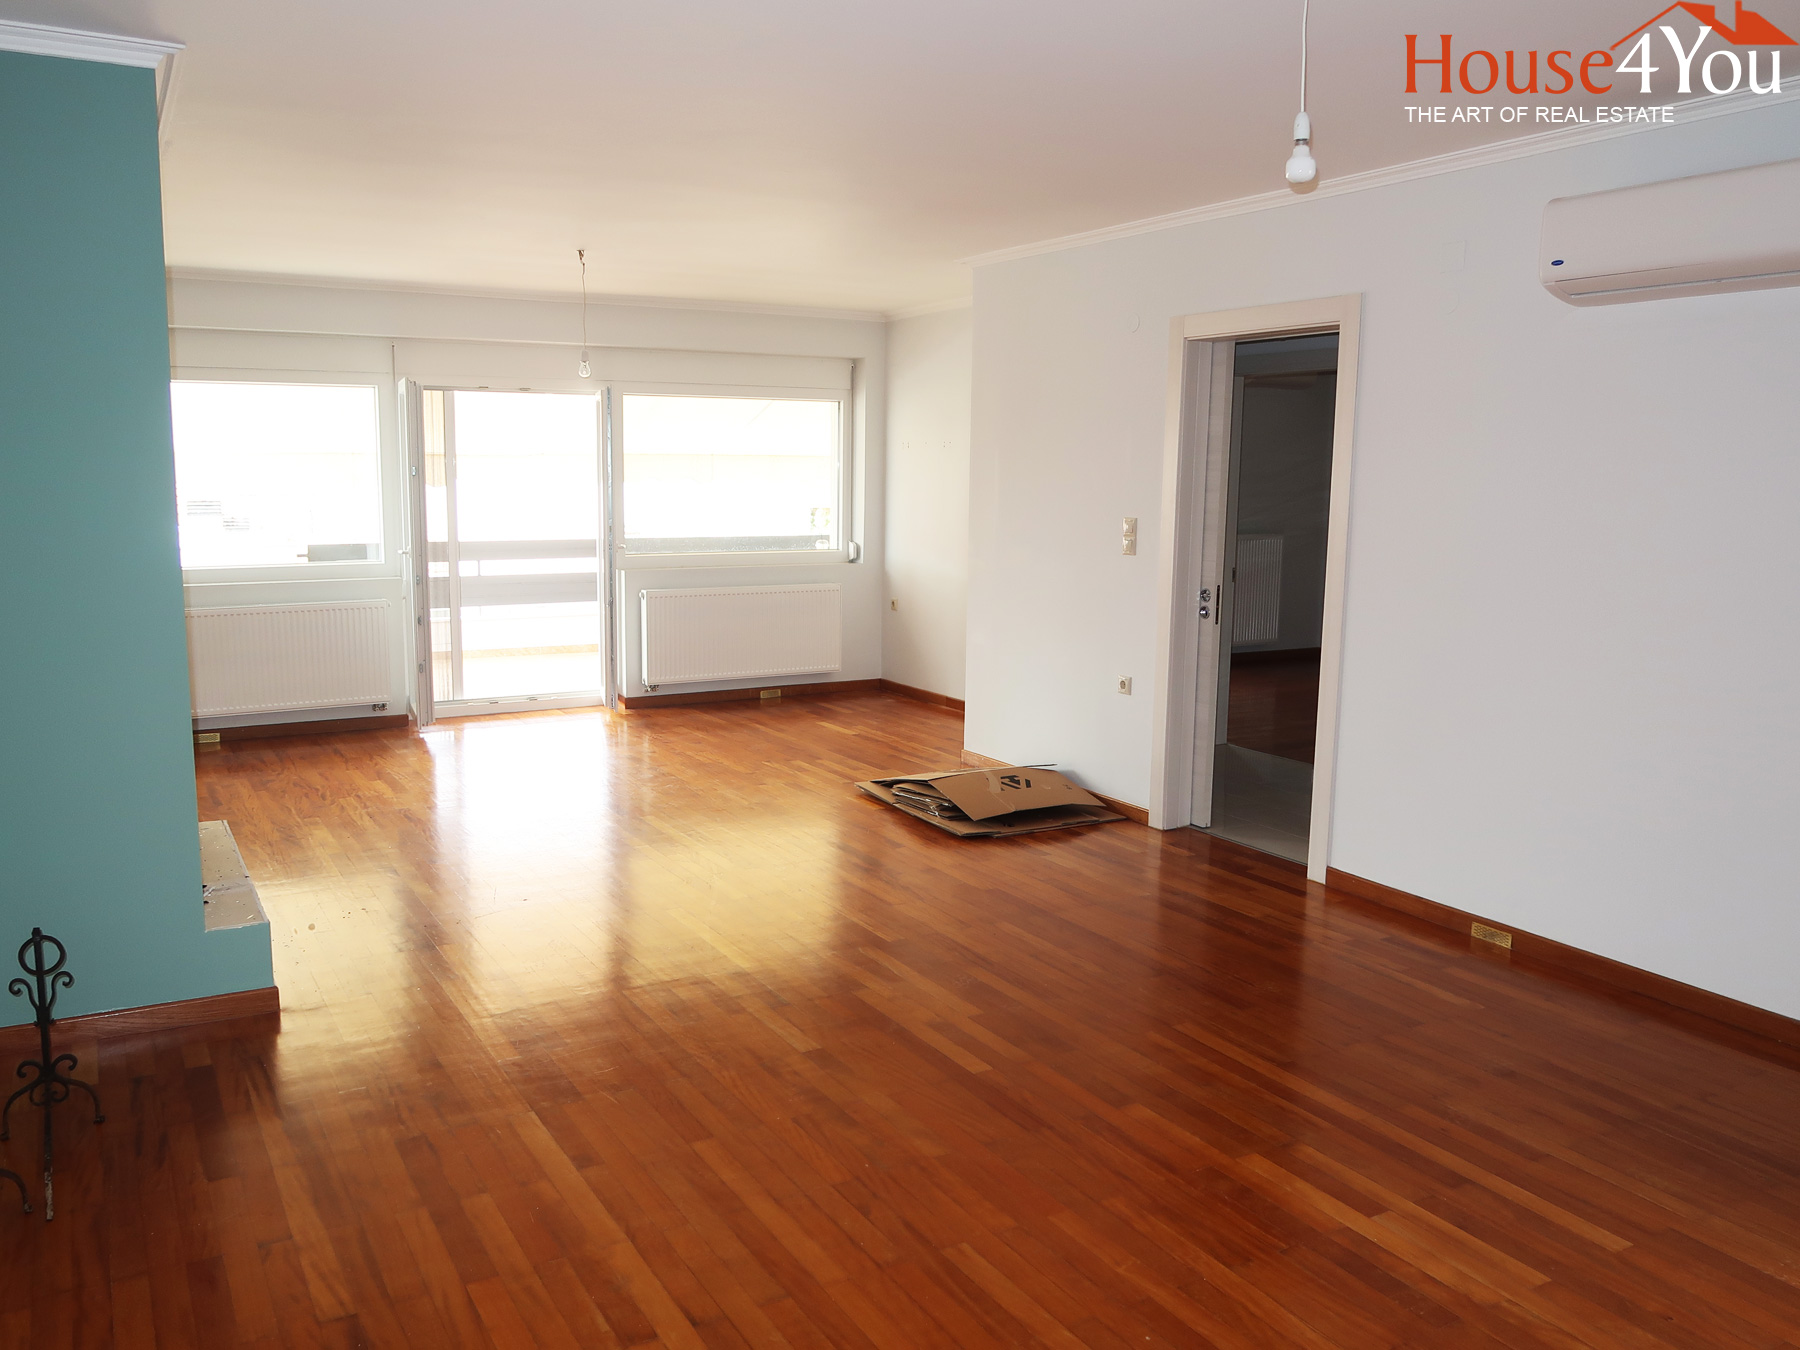 For sale luxury 2 bedrooms apartment of 103 sq.m. completely renovated in 2019 in the city center of Ioannina